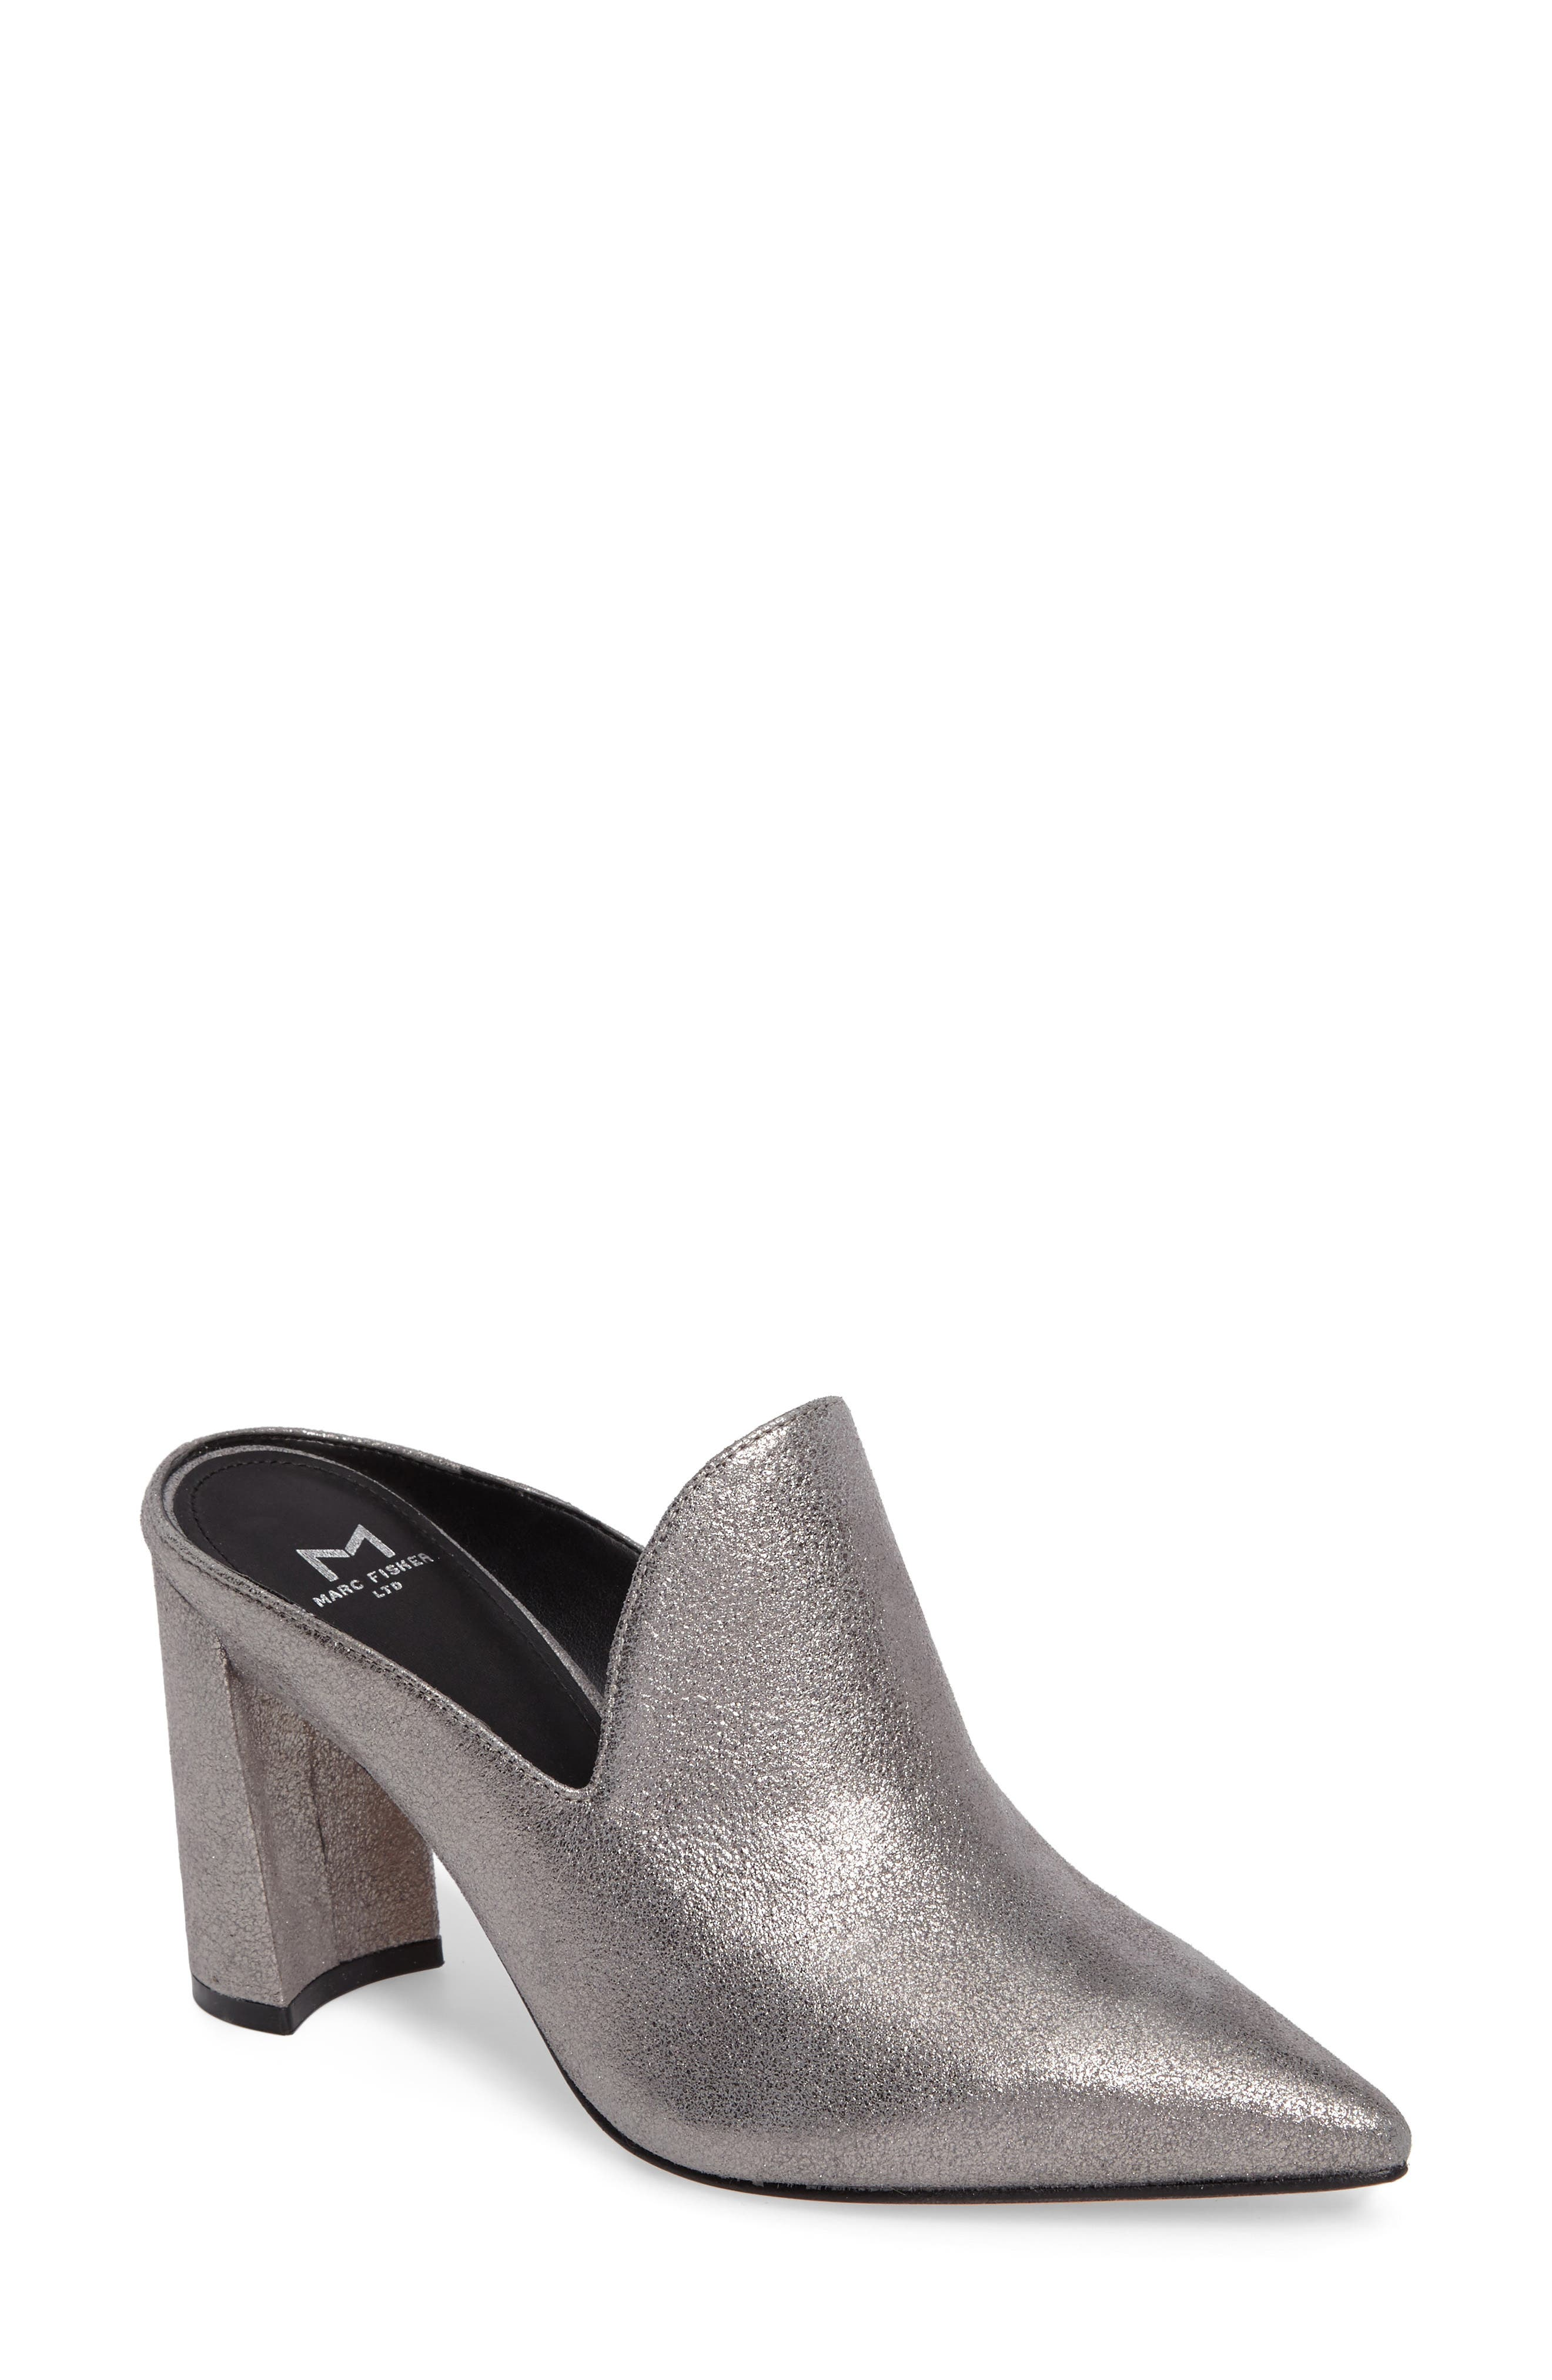 Alternate Image 1 Selected - Marc Fisher LTD Hilda Pointy Toe Mule (Women)